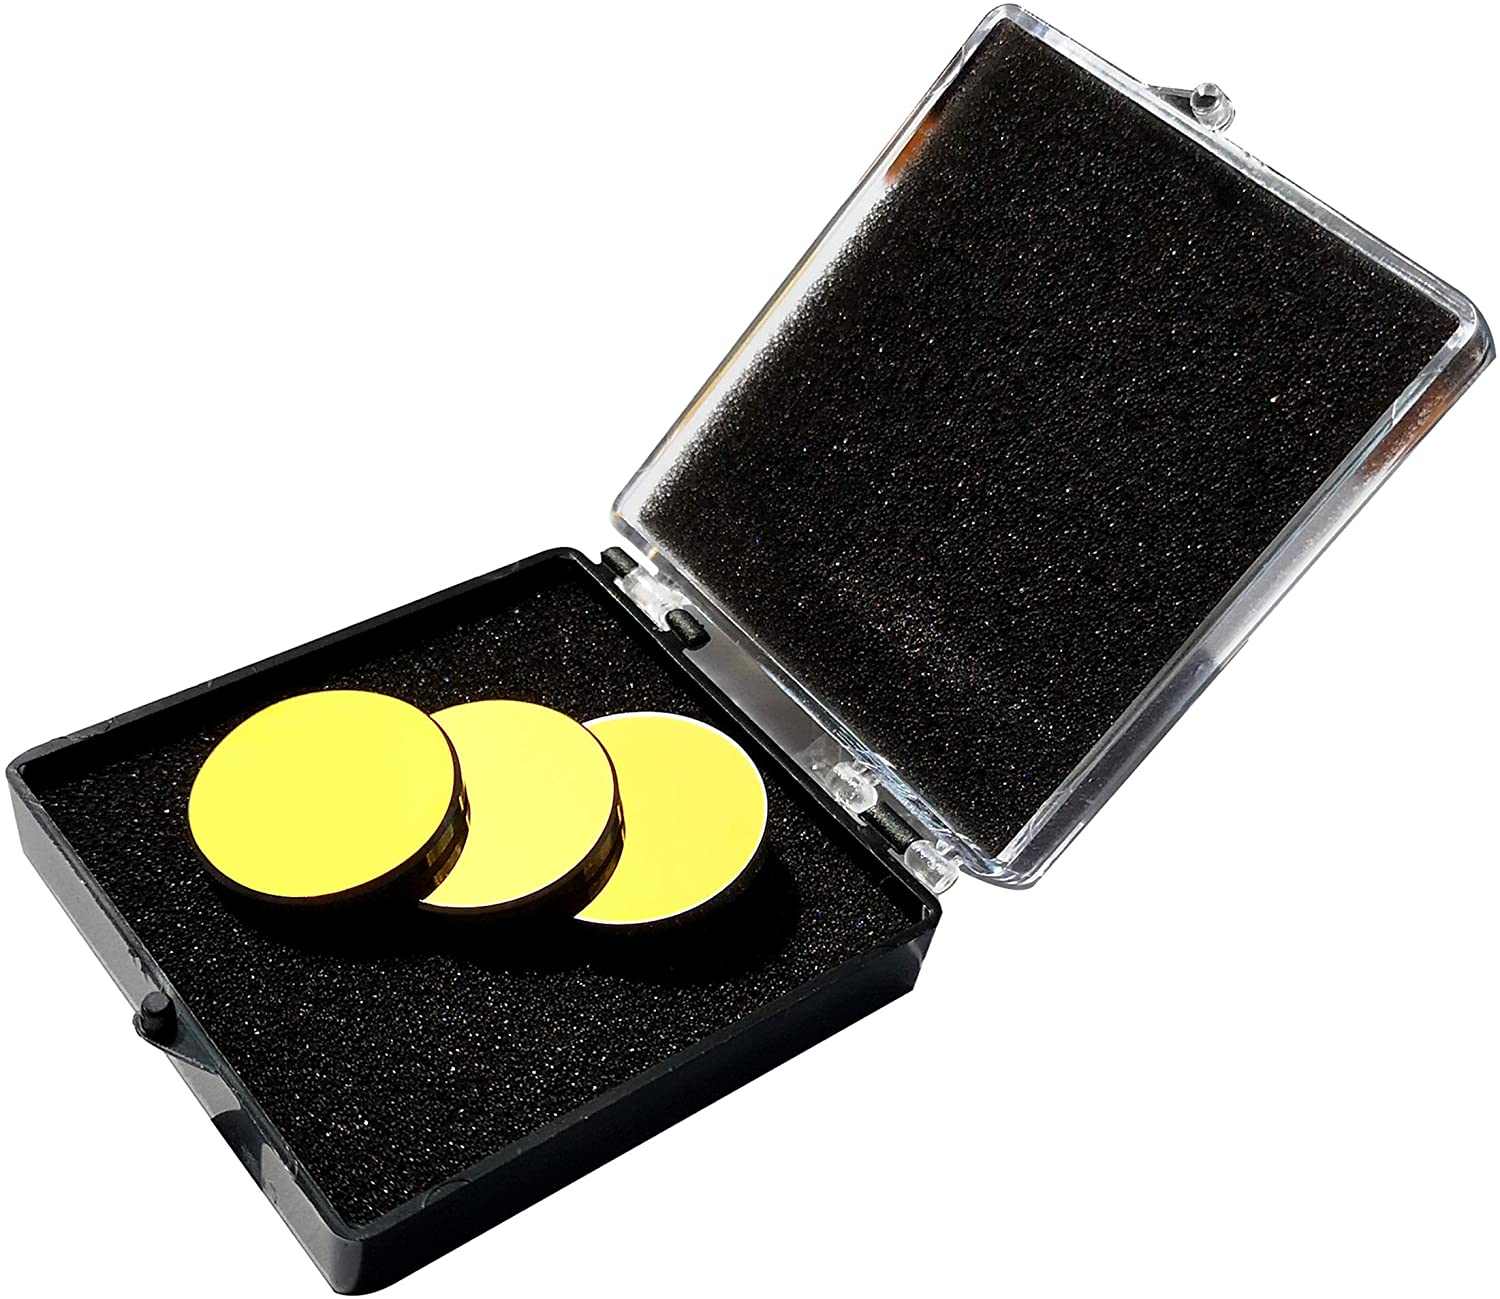 CNCOLETECH 3PCS Si Seasonal Wrap入荷 Mirror Coated Gold for Dia:20mm Eng CO2 Laser 格安